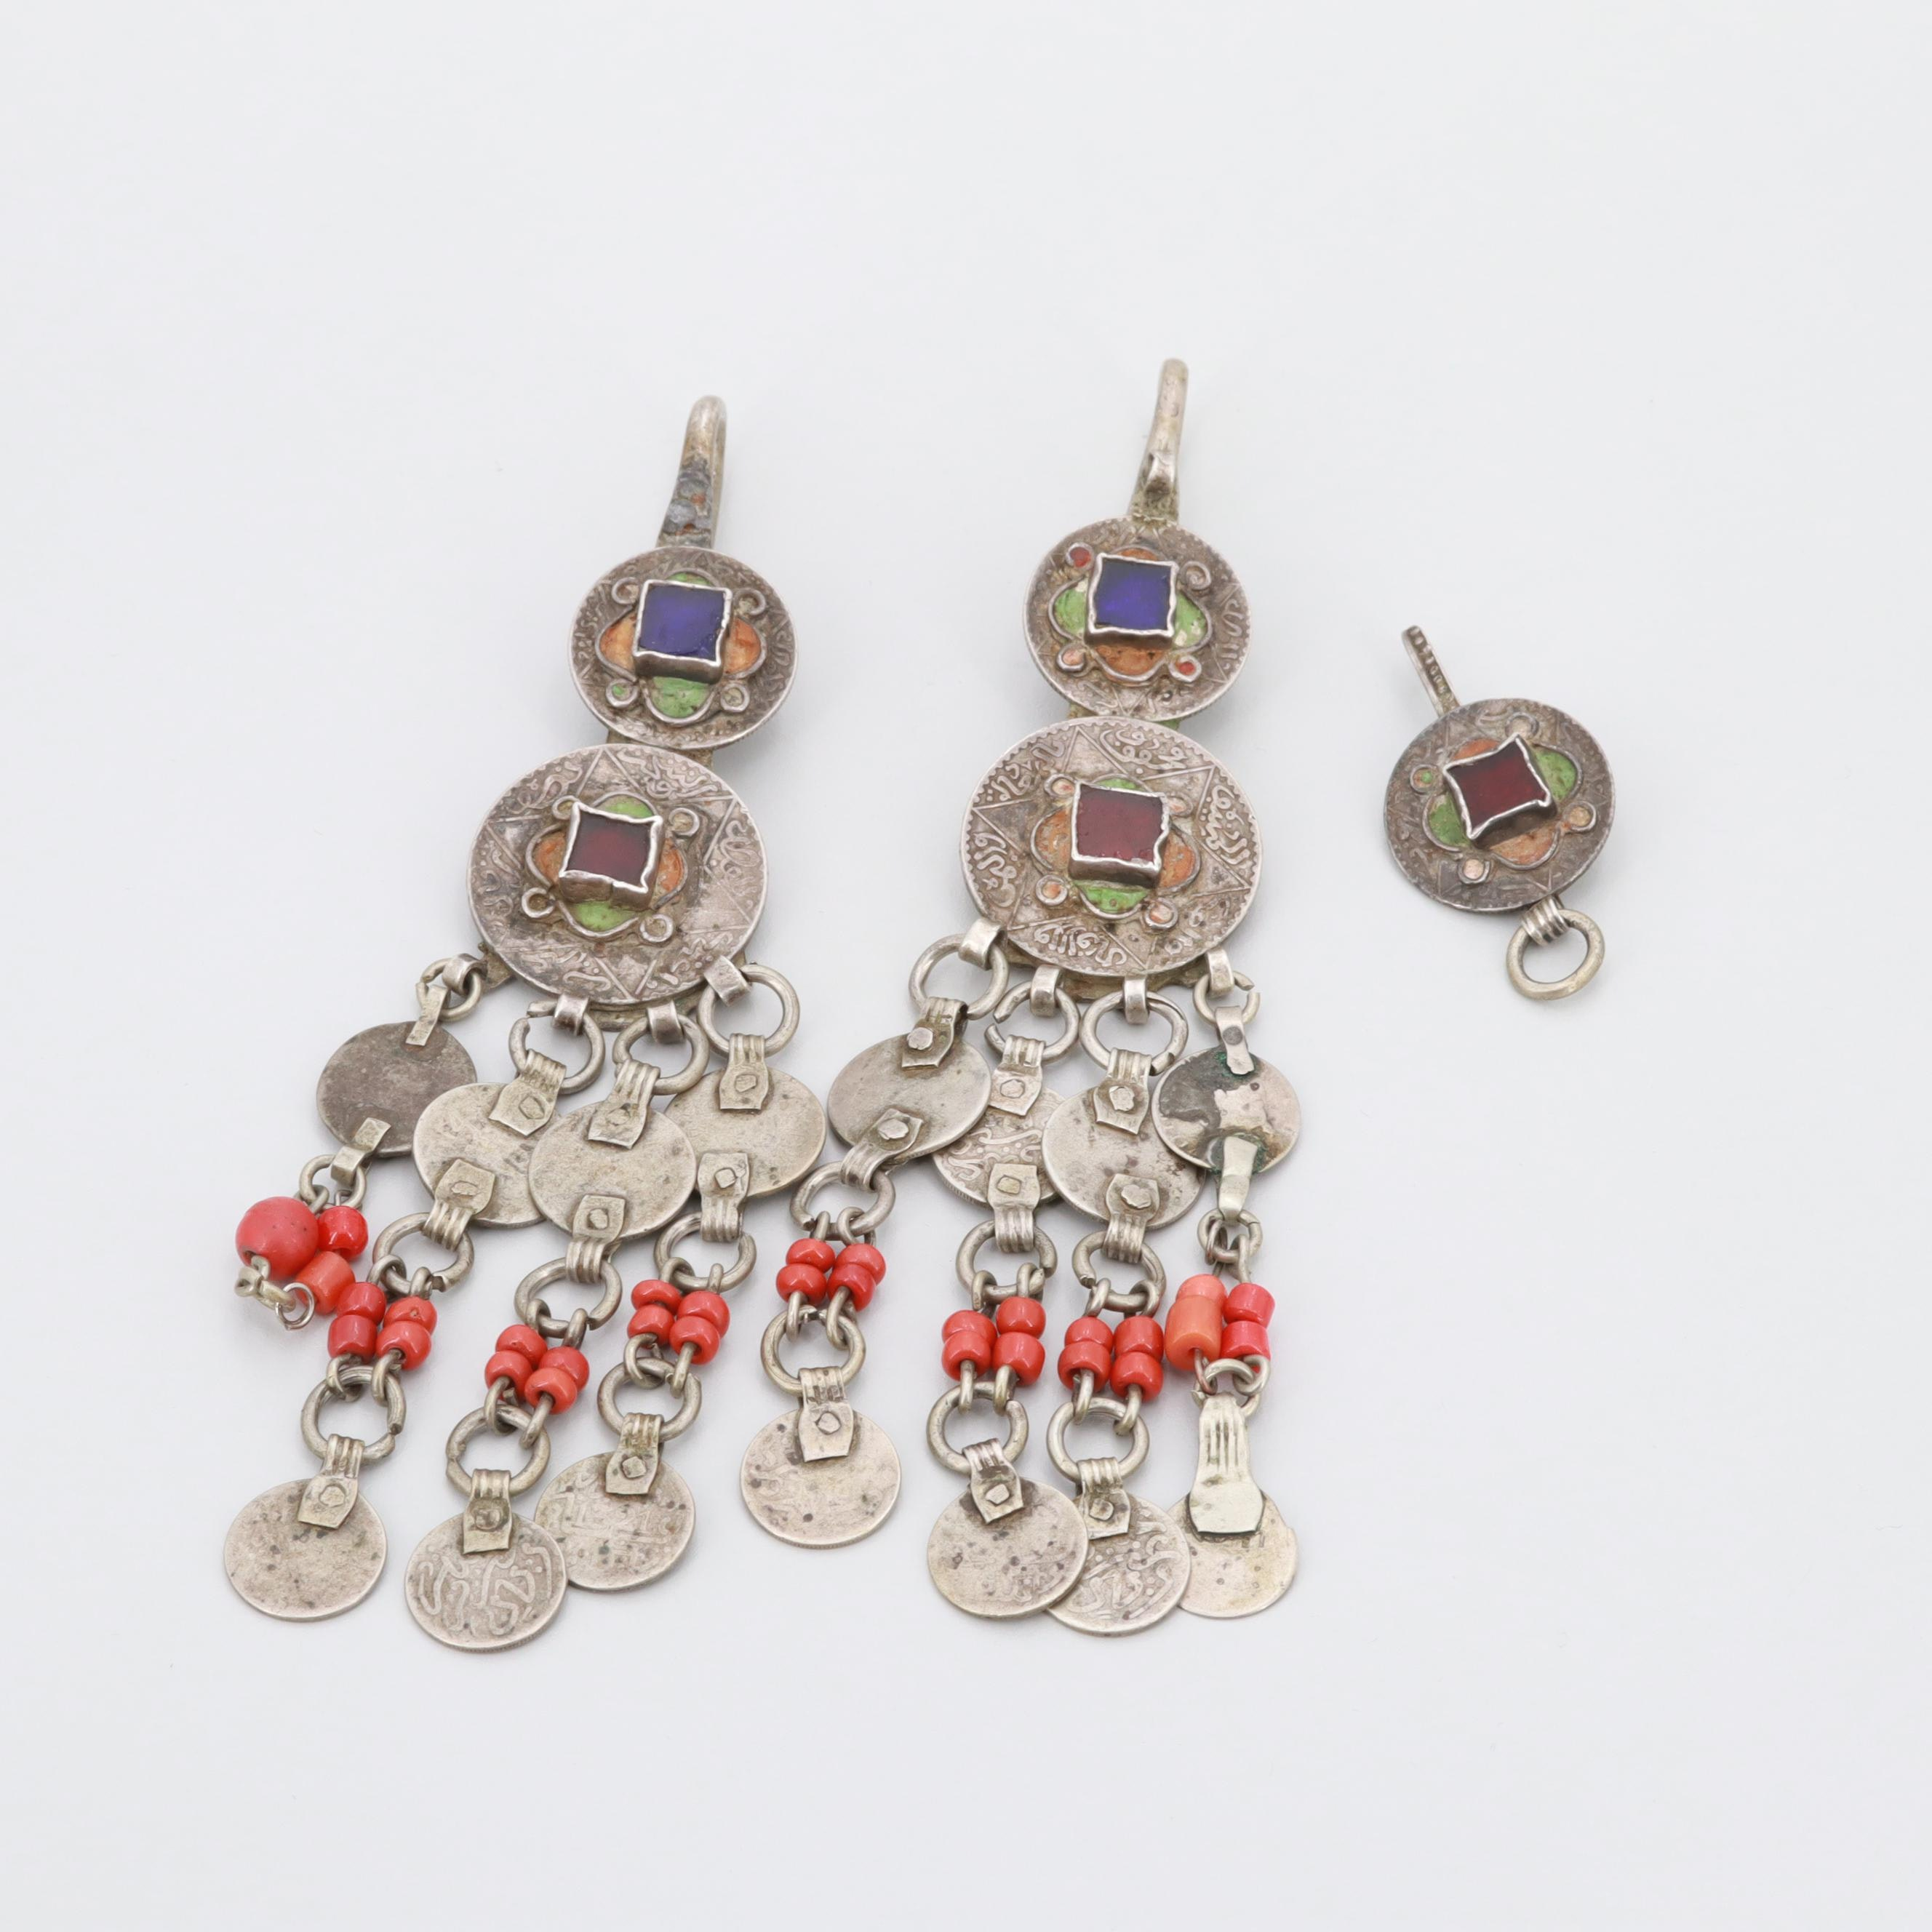 800 and 900 Sliver Coral and Glass Adornments